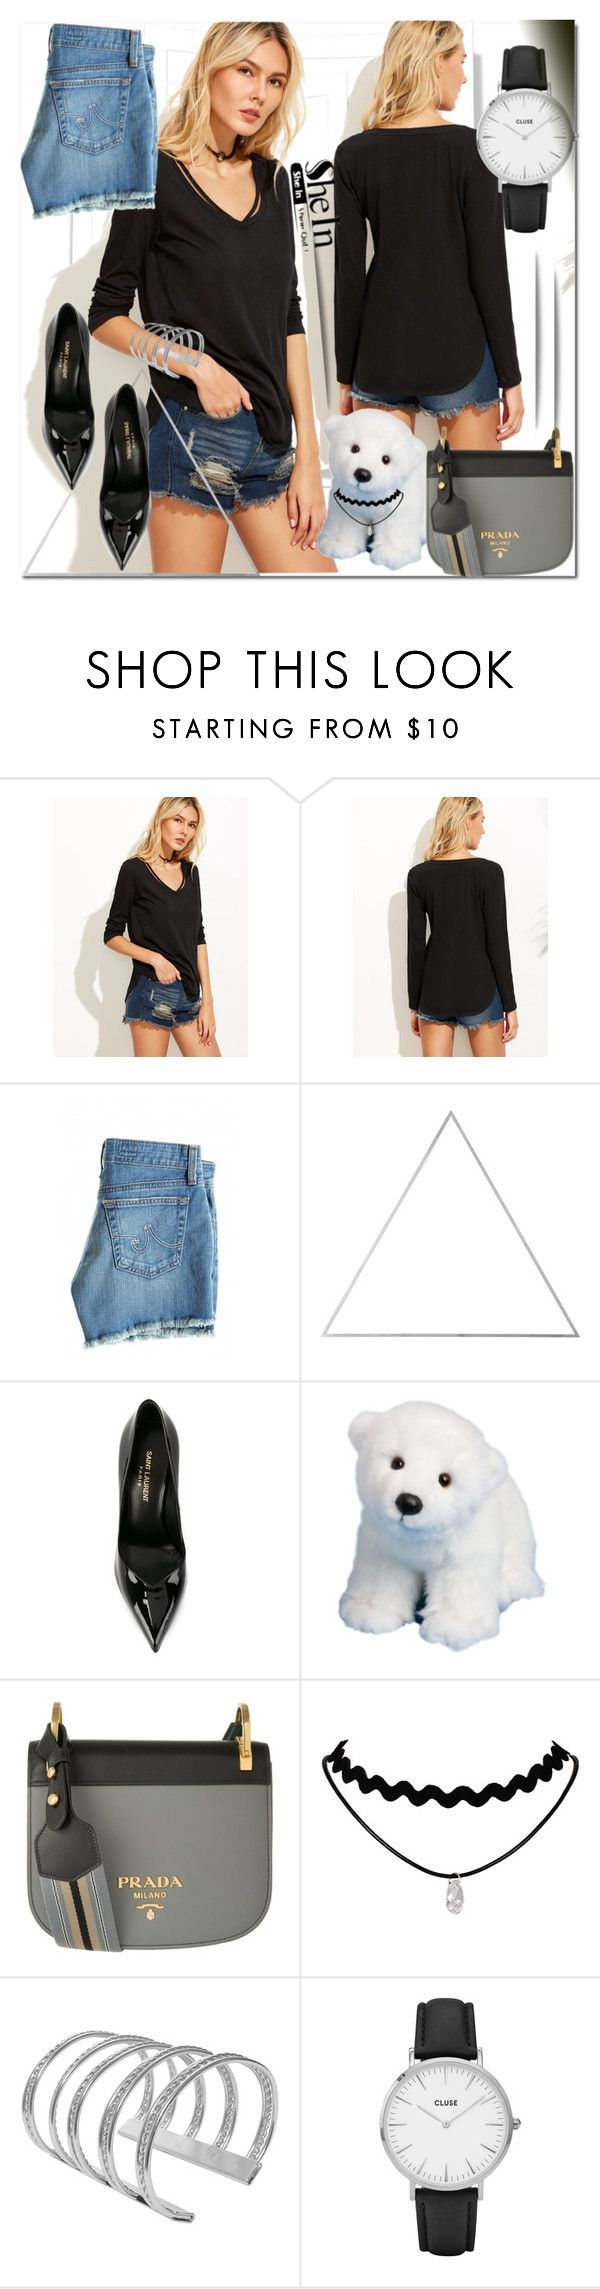 """T-shirt-shein"" by ilona-828 ❤ liked on Polyvore featuring AG Adriano Goldschmied, Menu, Yves Saint Laurent, Prada, CLUSE, polyvoreeditorial and shein"